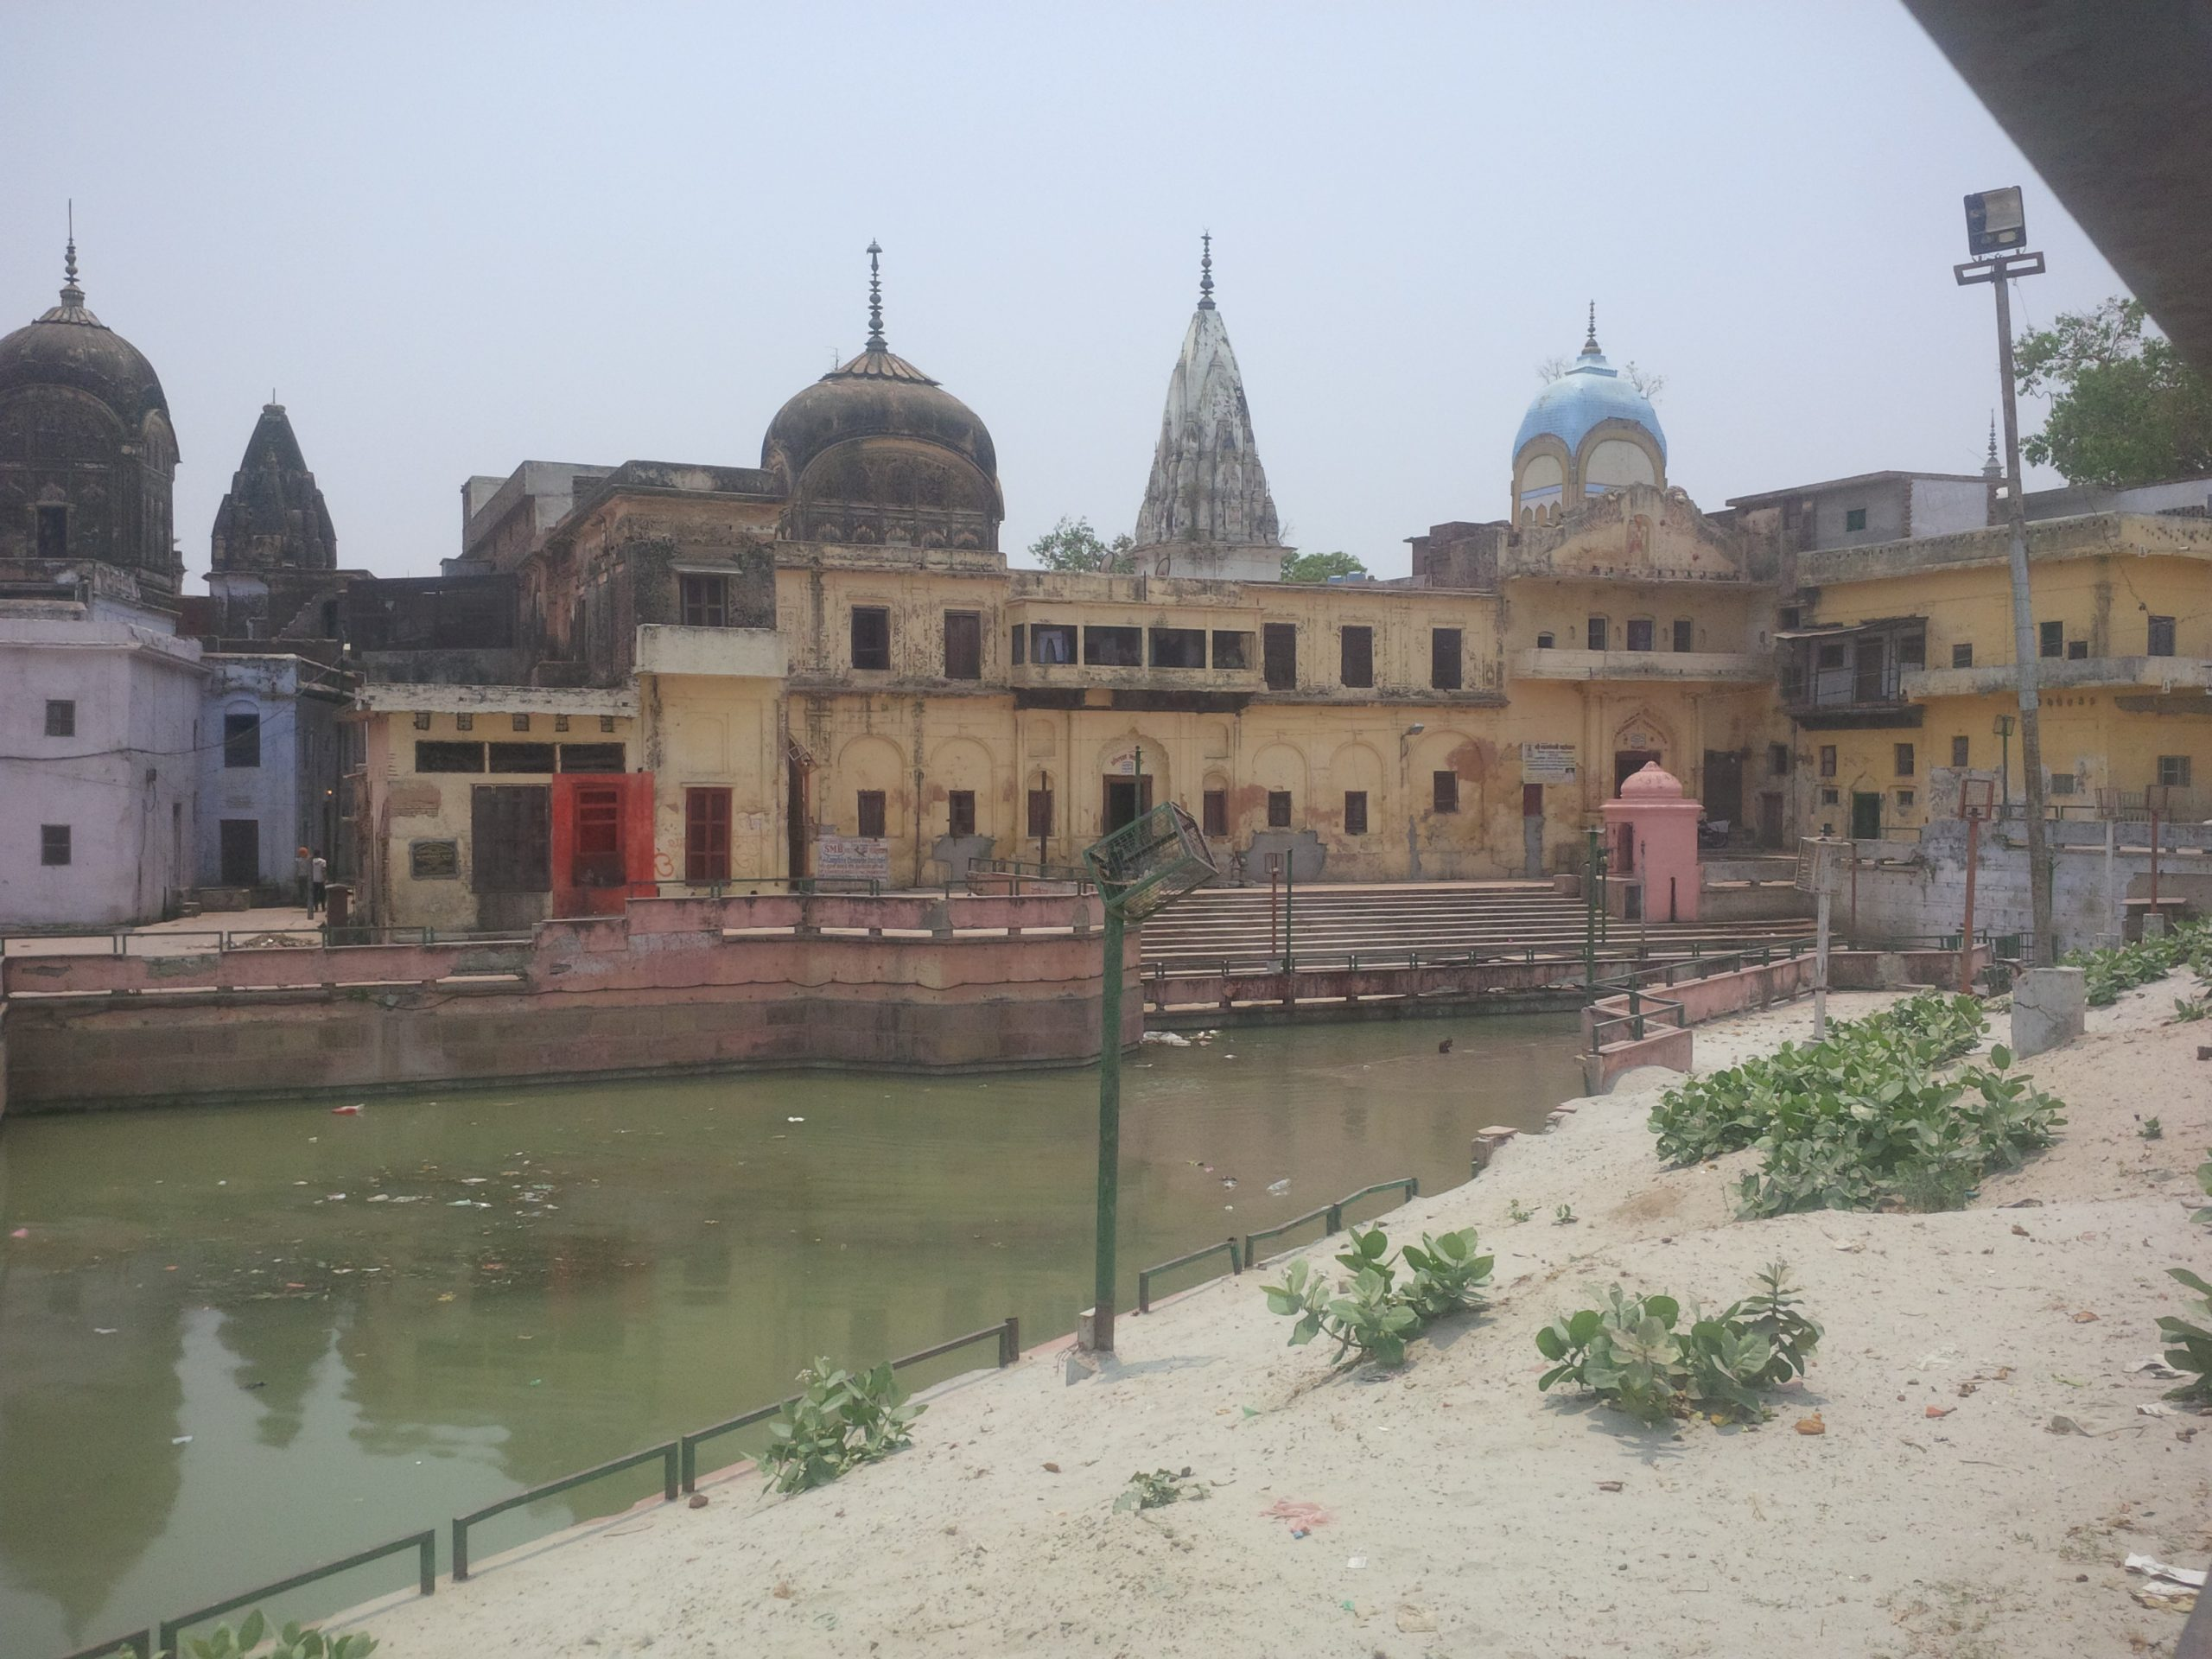 A visit to Ayodhya